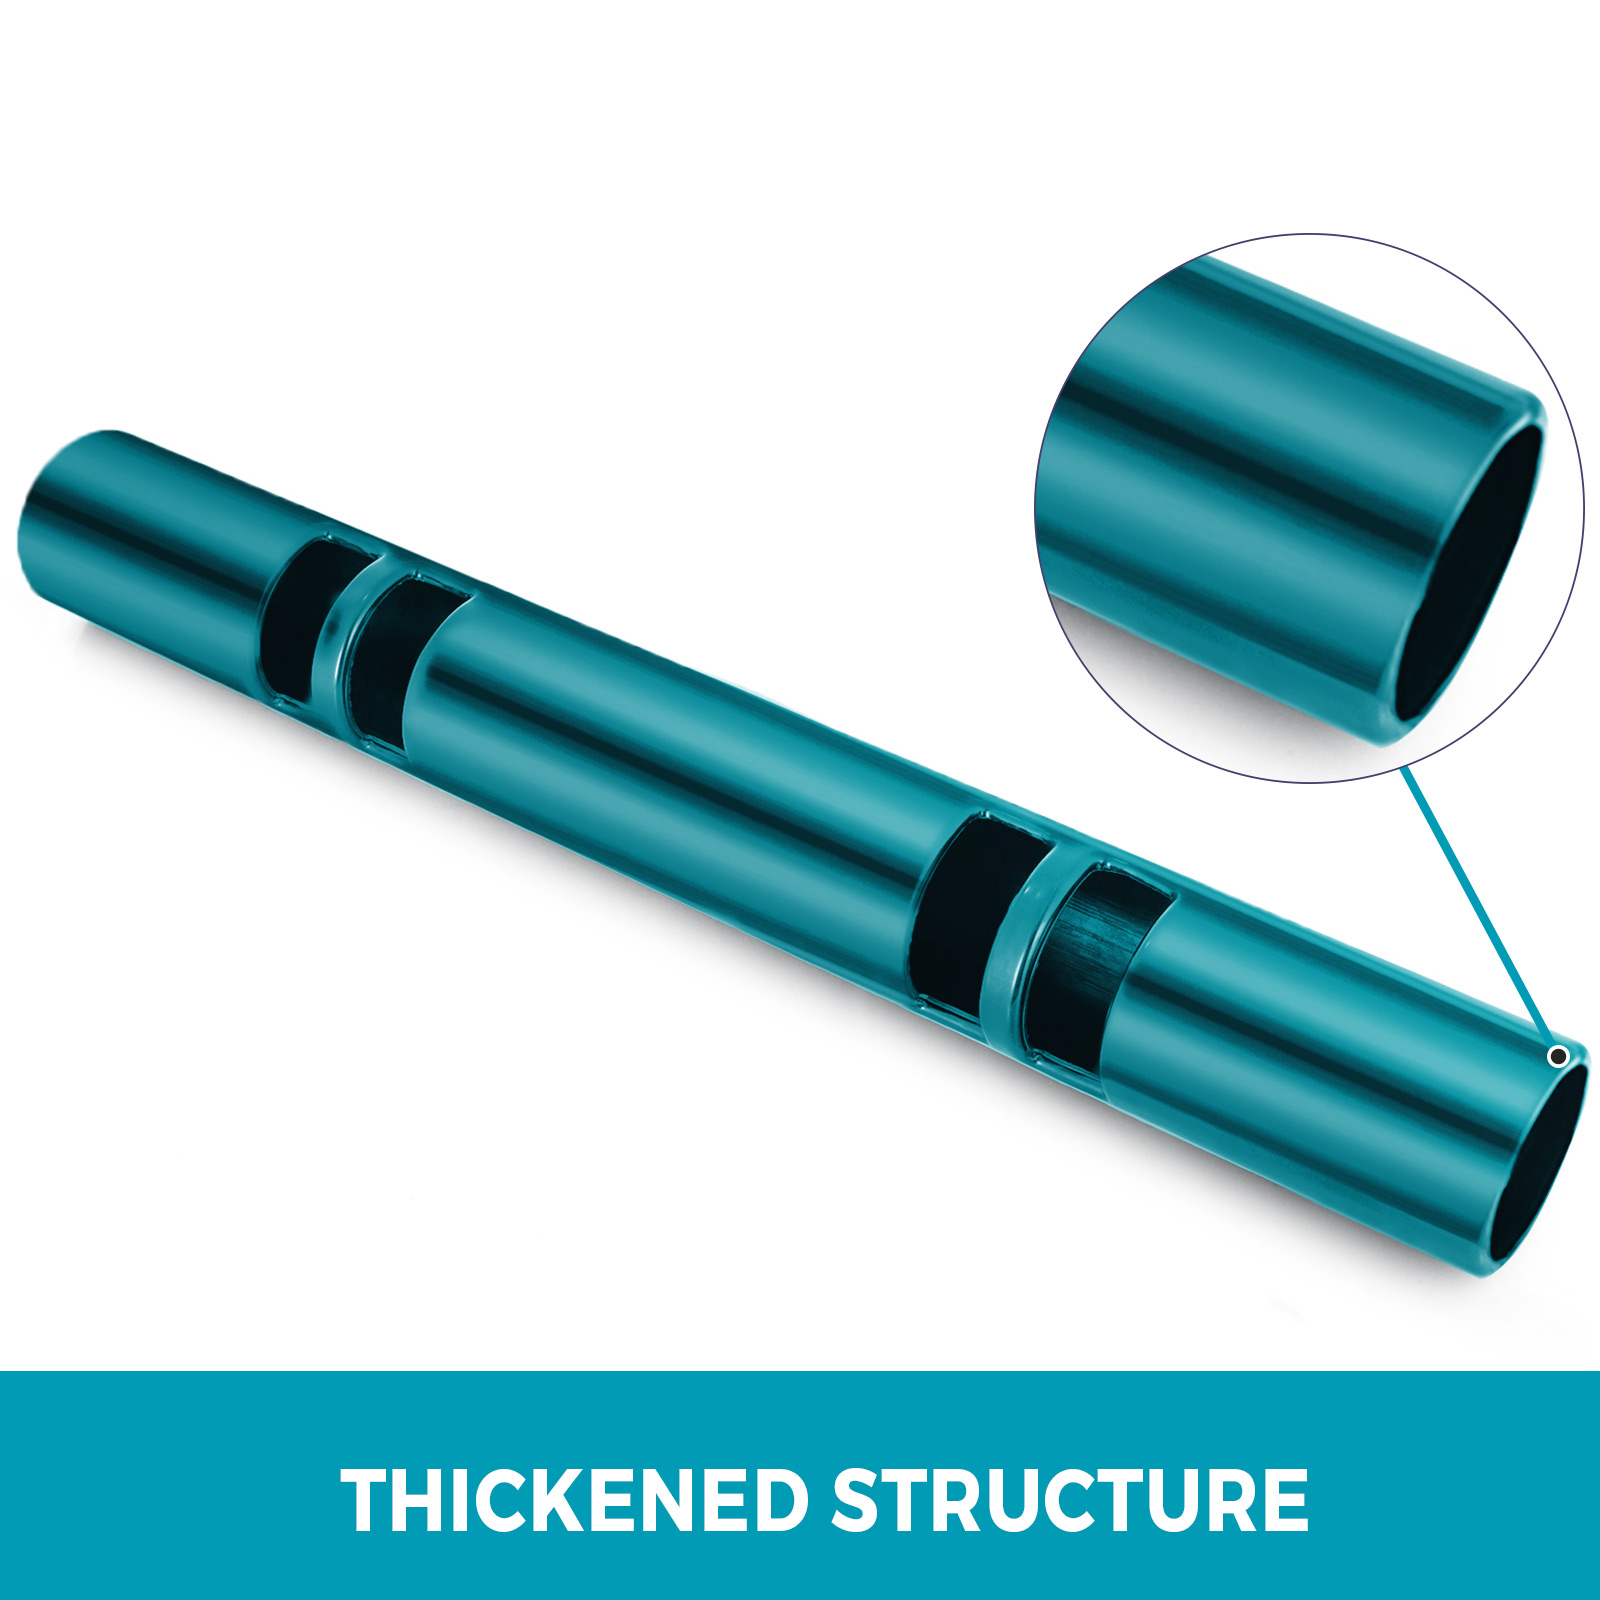 Vipr-Fitpro-Fitness-Tube-Loaded-Movement-Training-weightlifting-4-6-8-10-12-Kg thumbnail 207